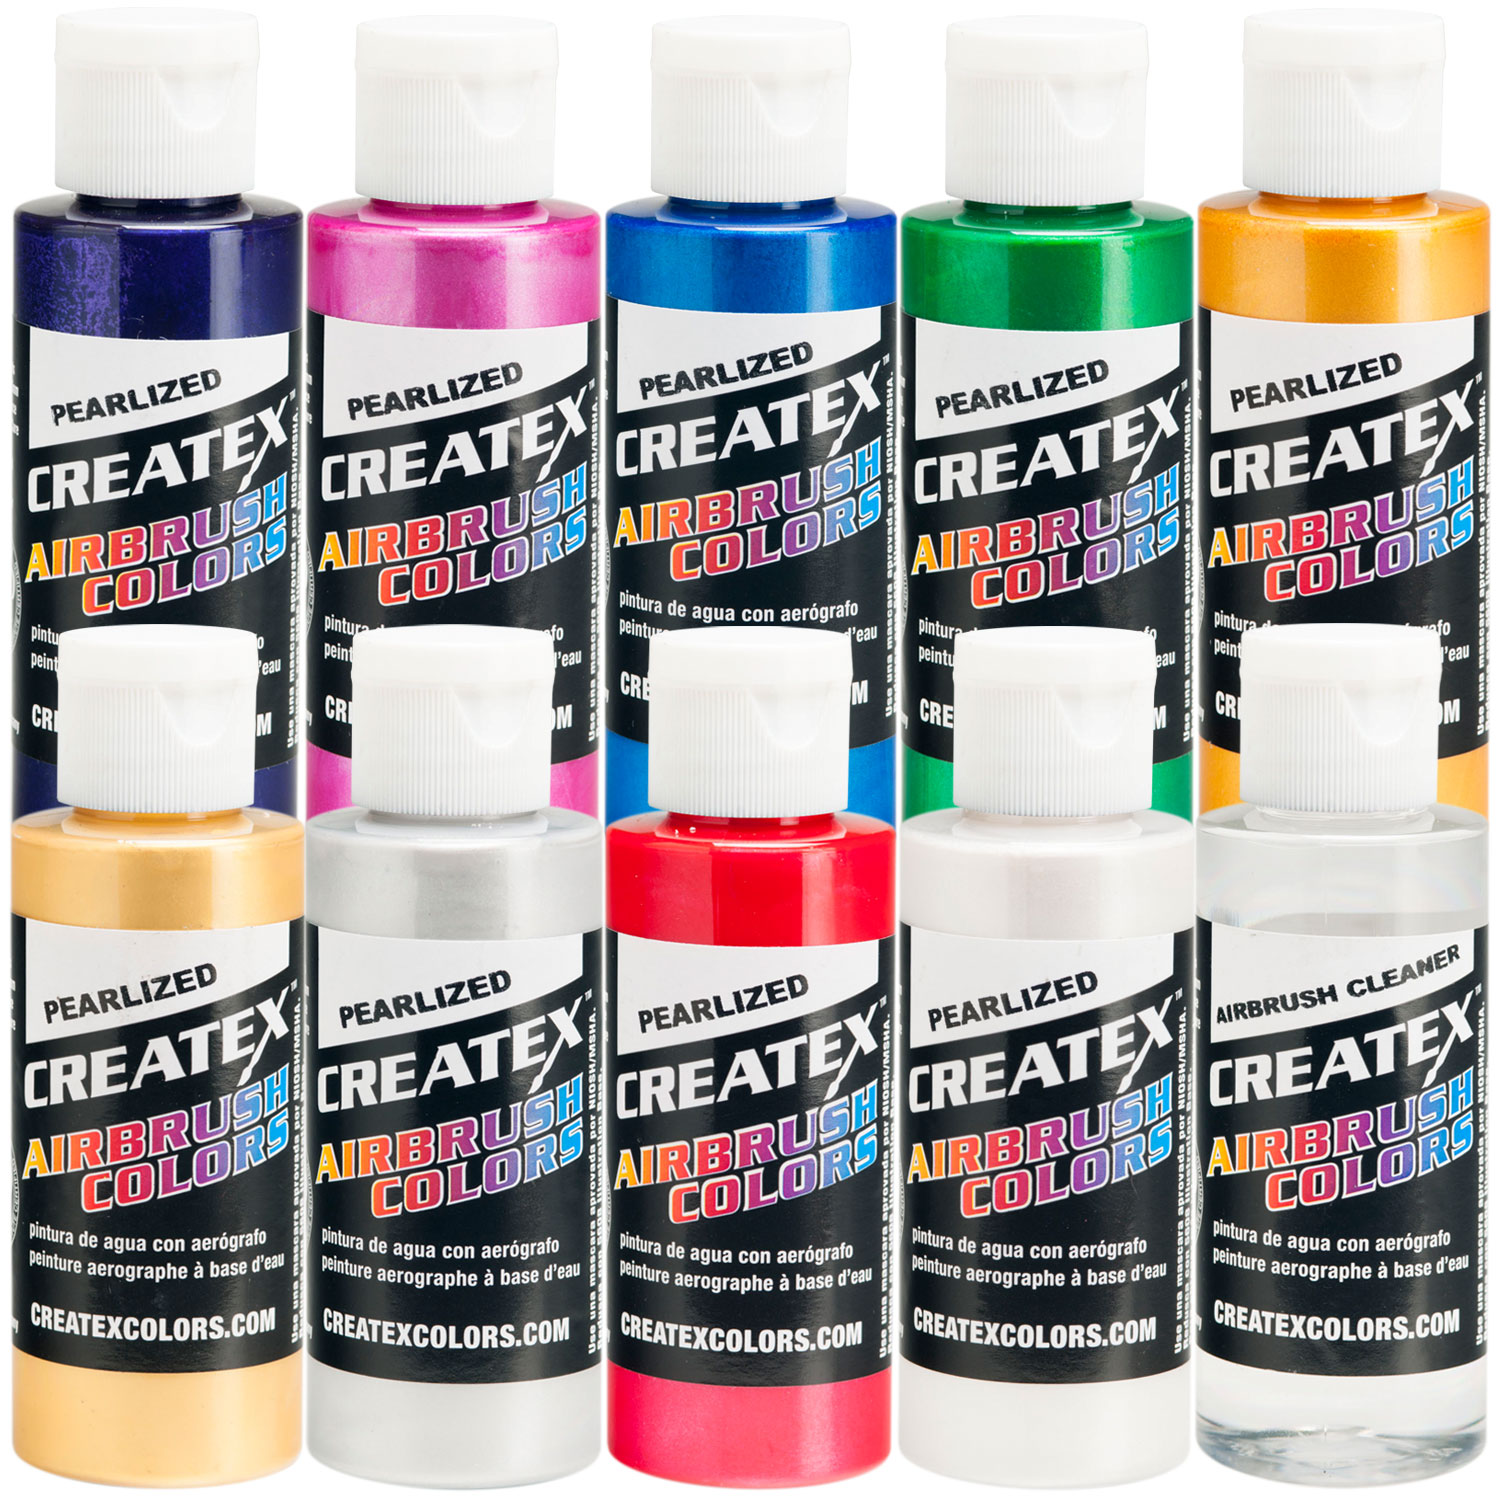 Createx 10 COLOR PEARLIZED SET Airbrush Paint Colors